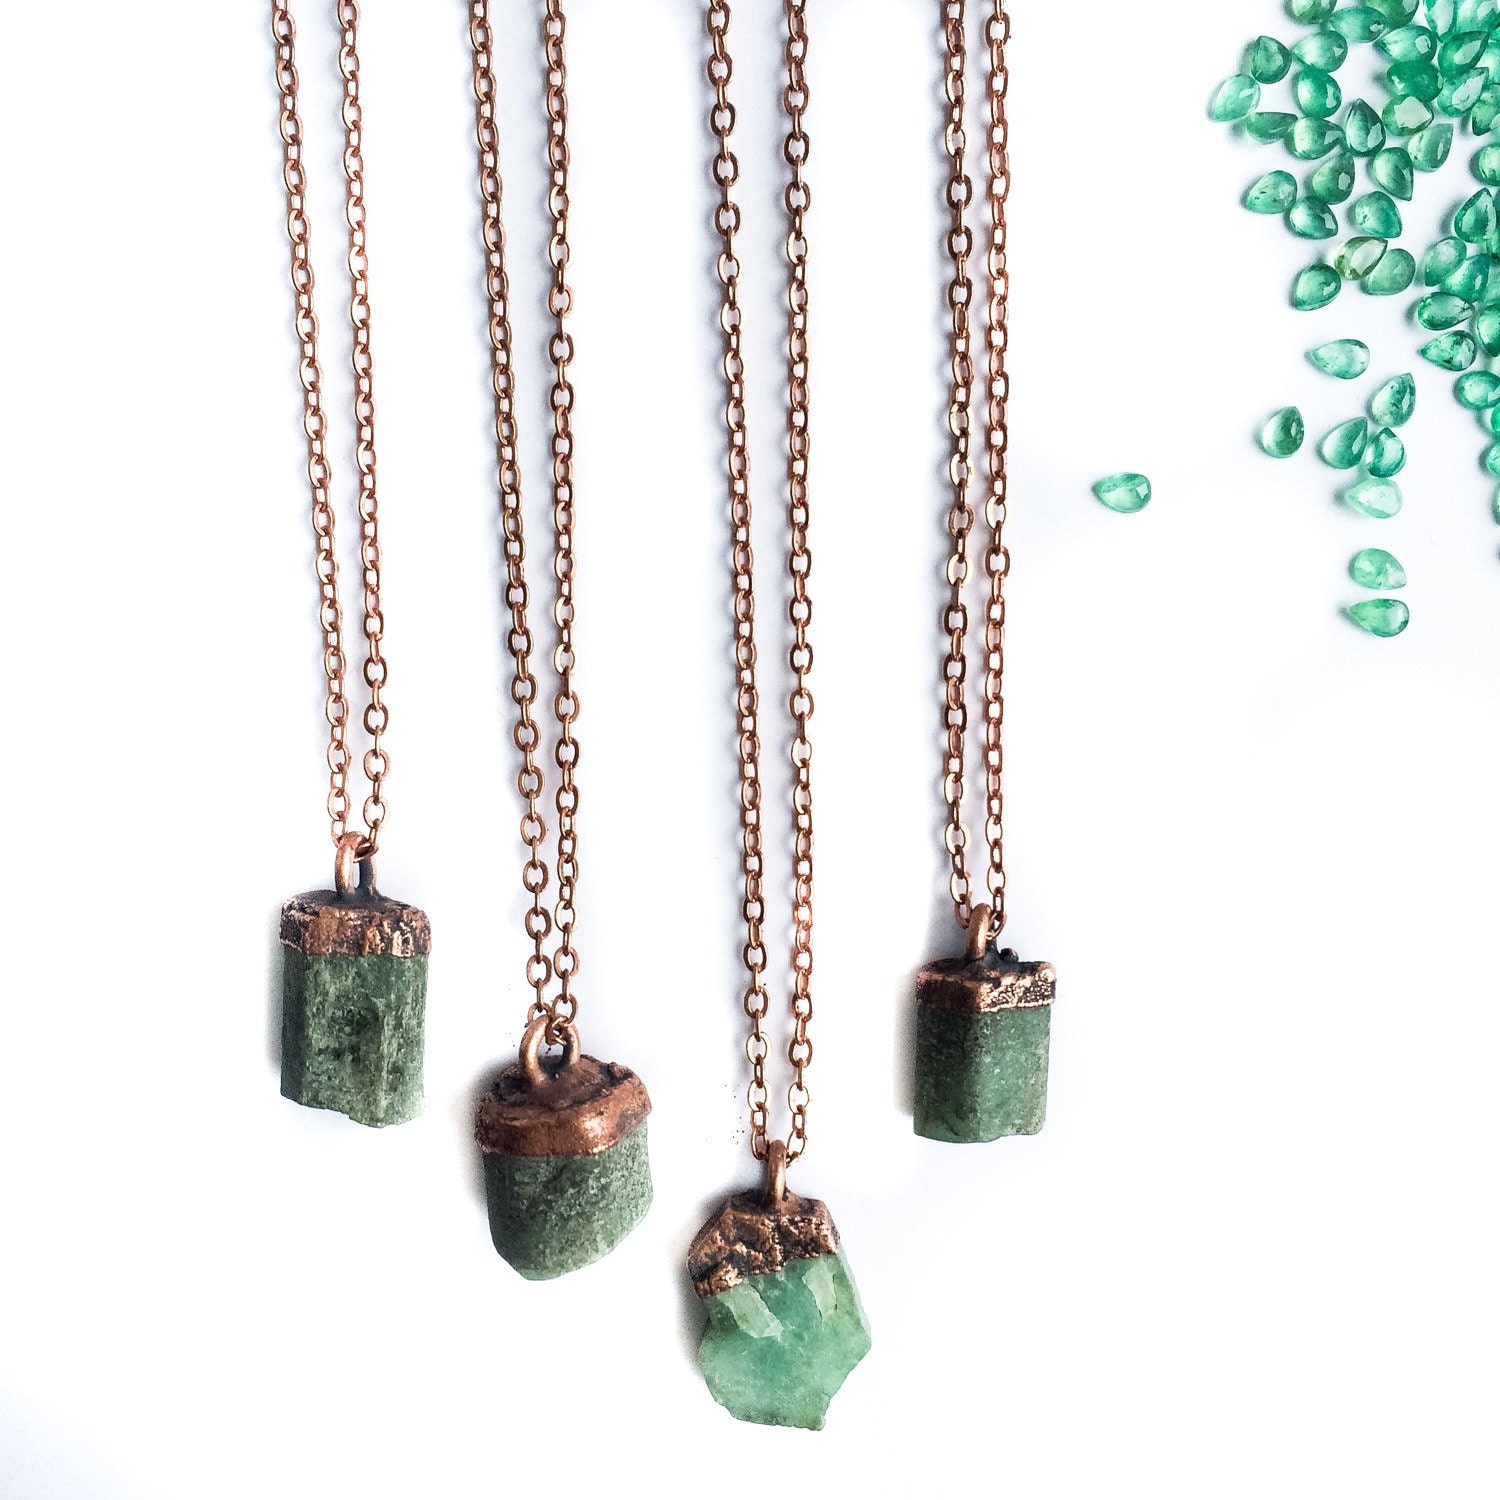 adjustable stone orders with jewelry gold fluorite raw over mint inch pendant overstock on product jules overlay natural free shipping necklace watches